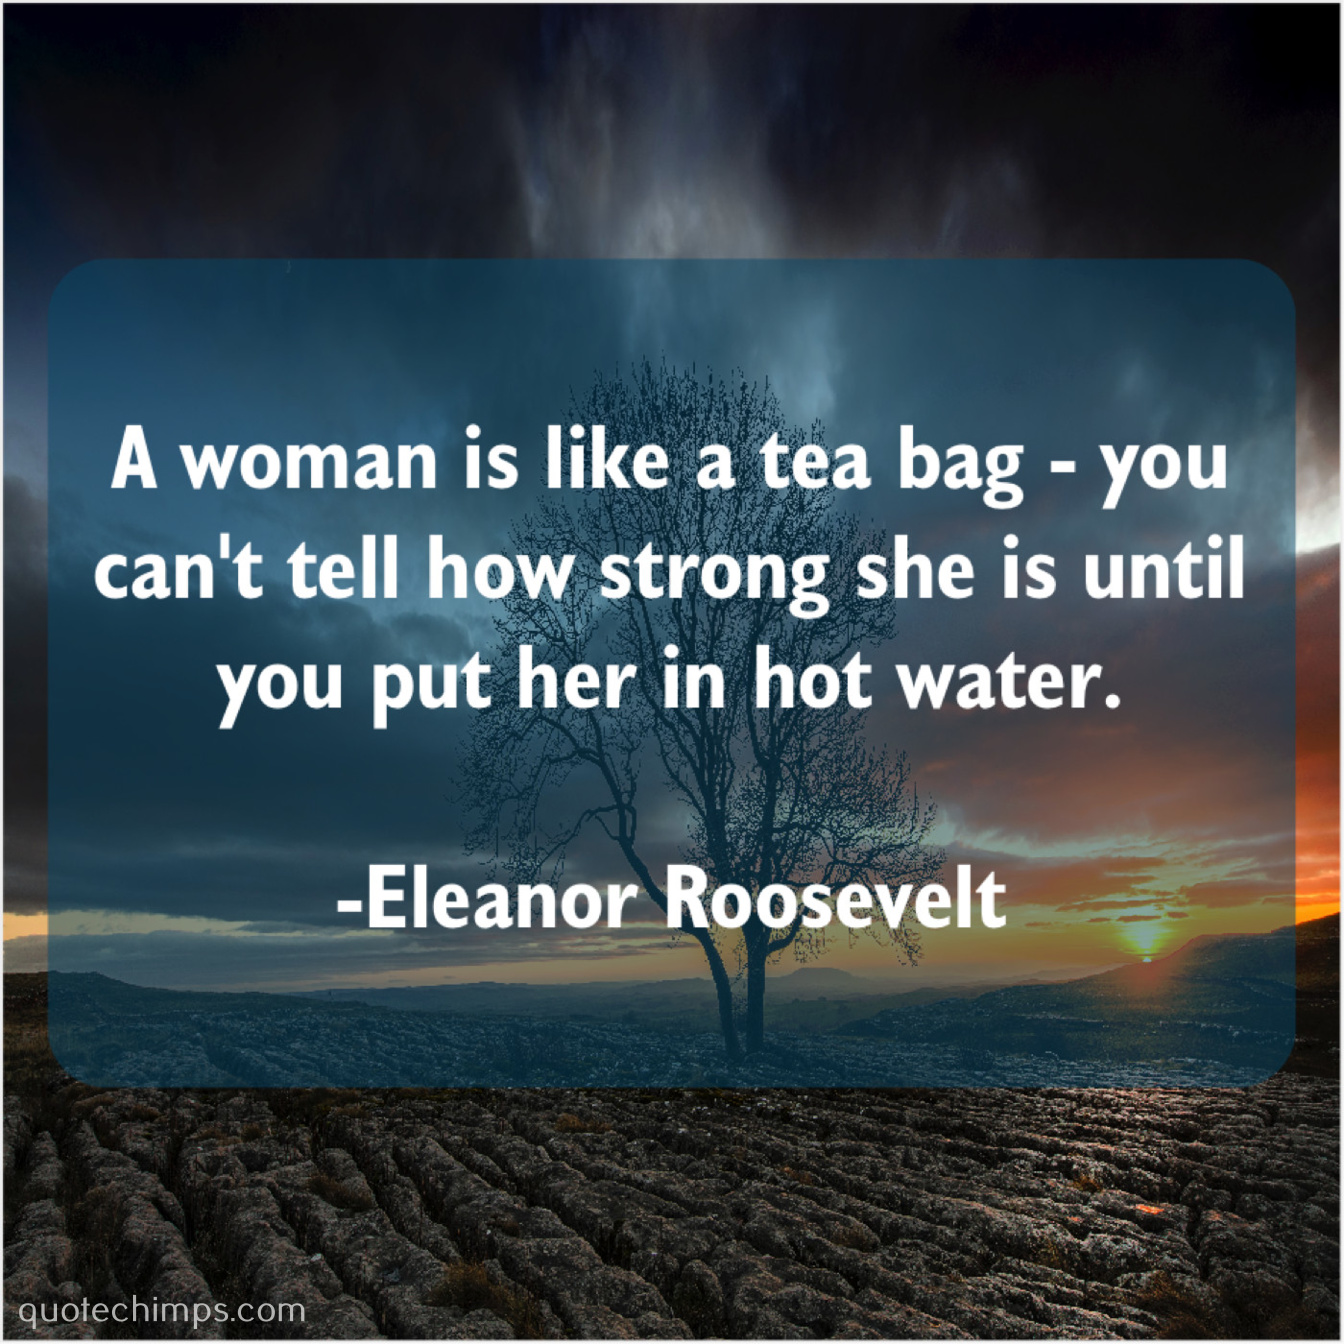 Eleanor Roosevelt A Woman Is Like A Quote Chimps